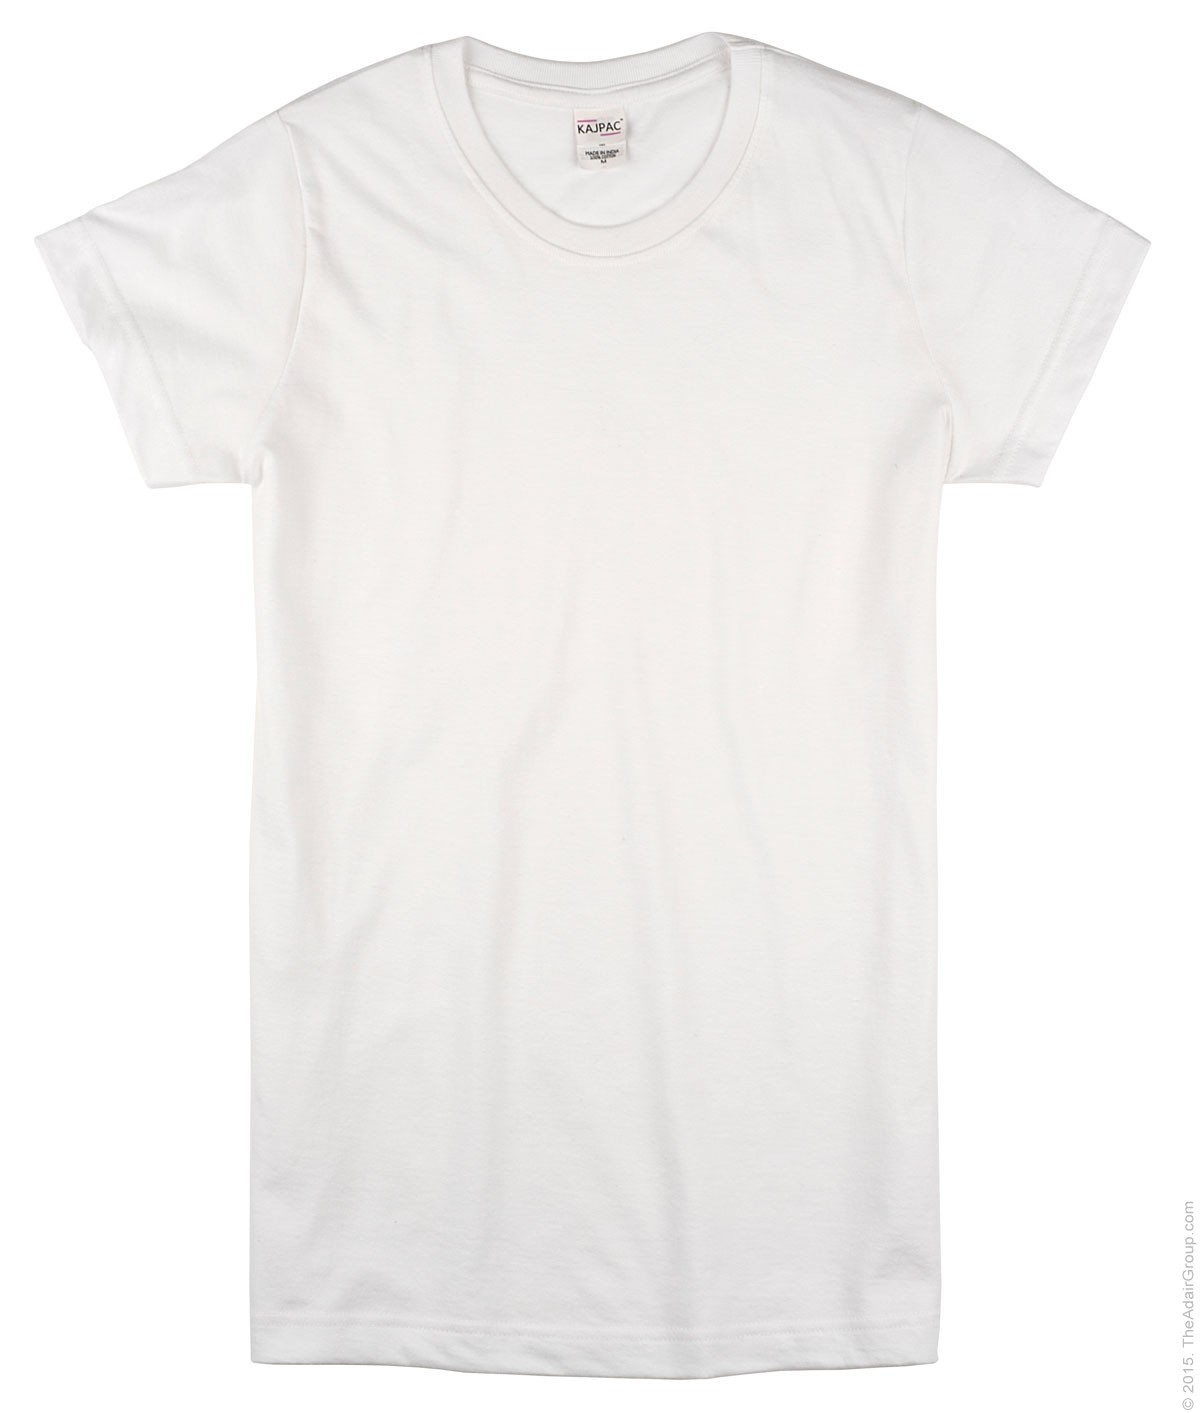 Find great deals on eBay for plain white t shirts wholesale. Shop with confidence.